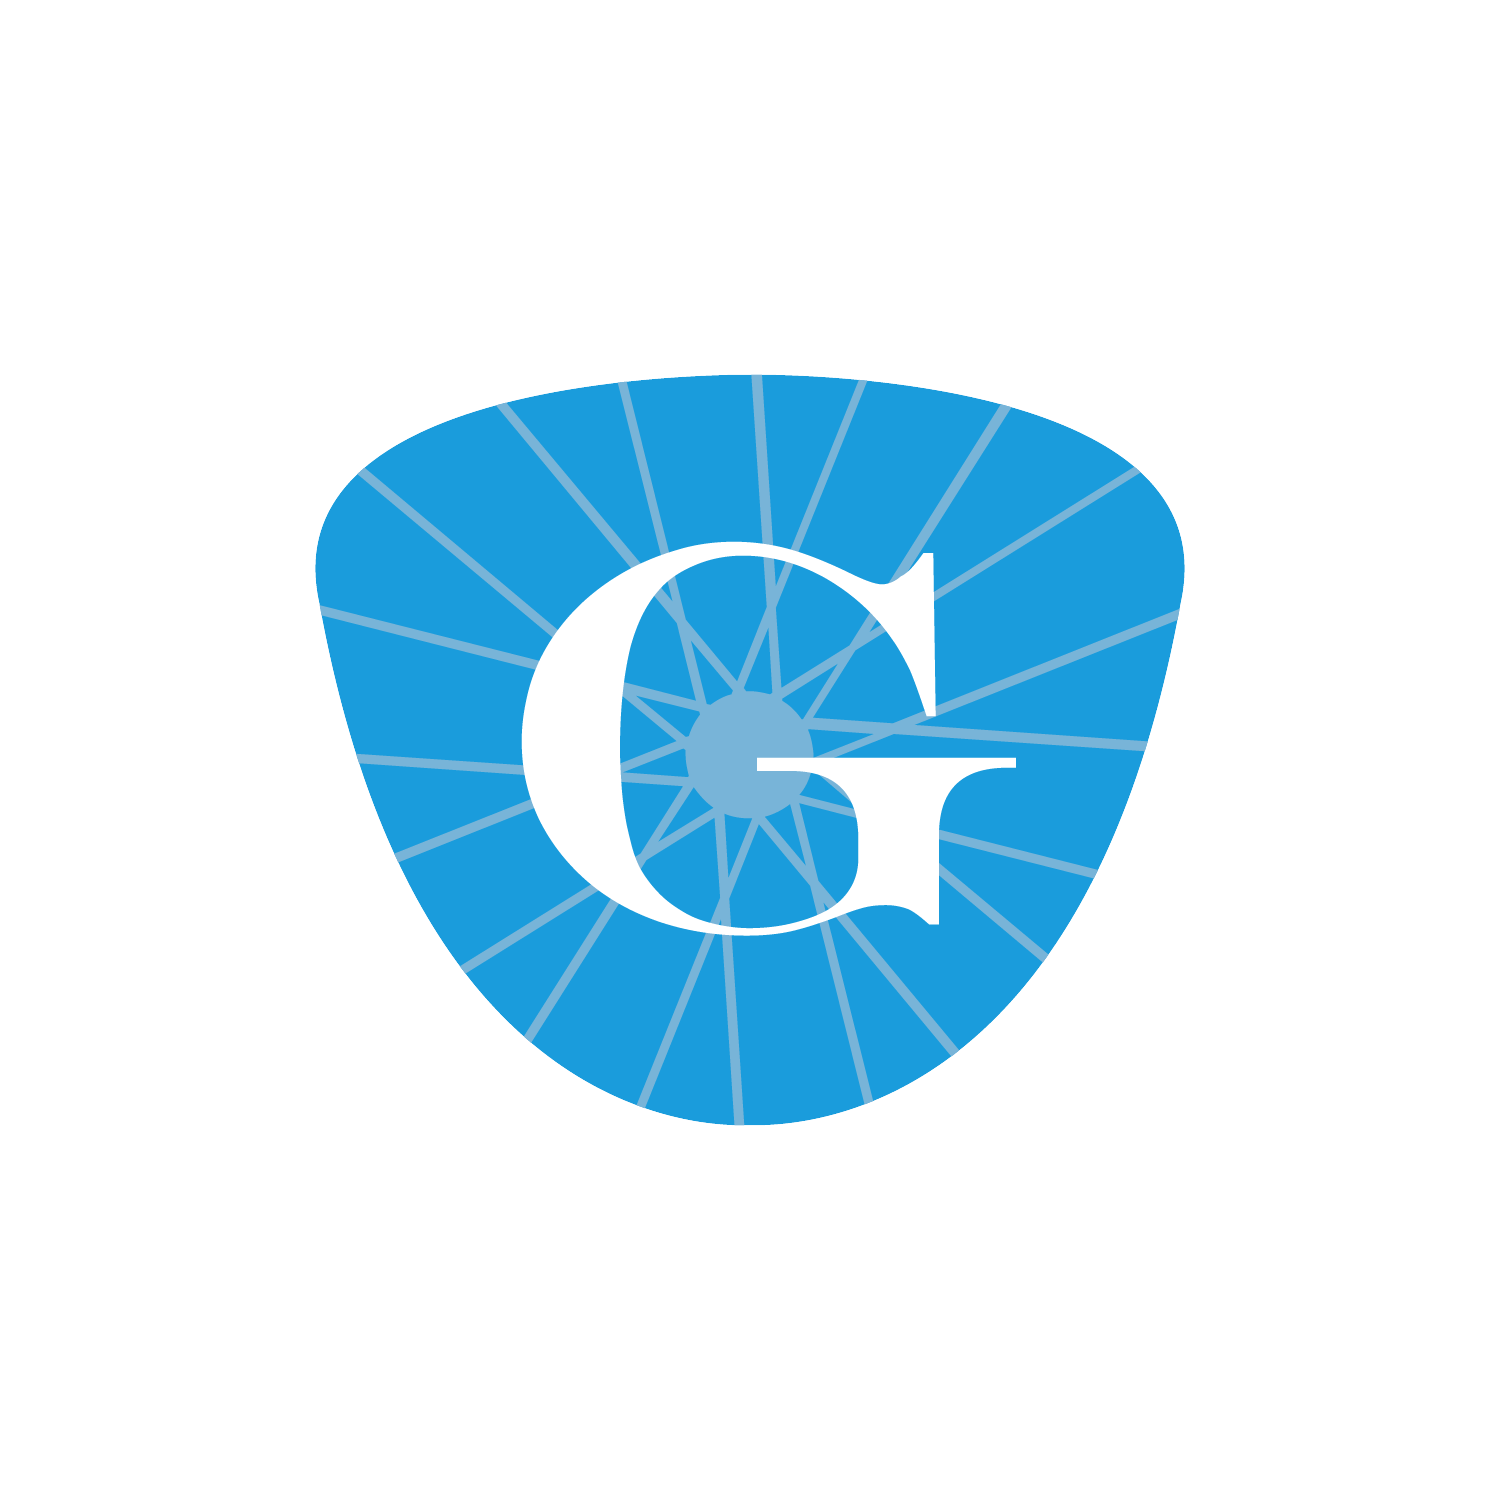 GRITCYCLE_LOGO-07.png